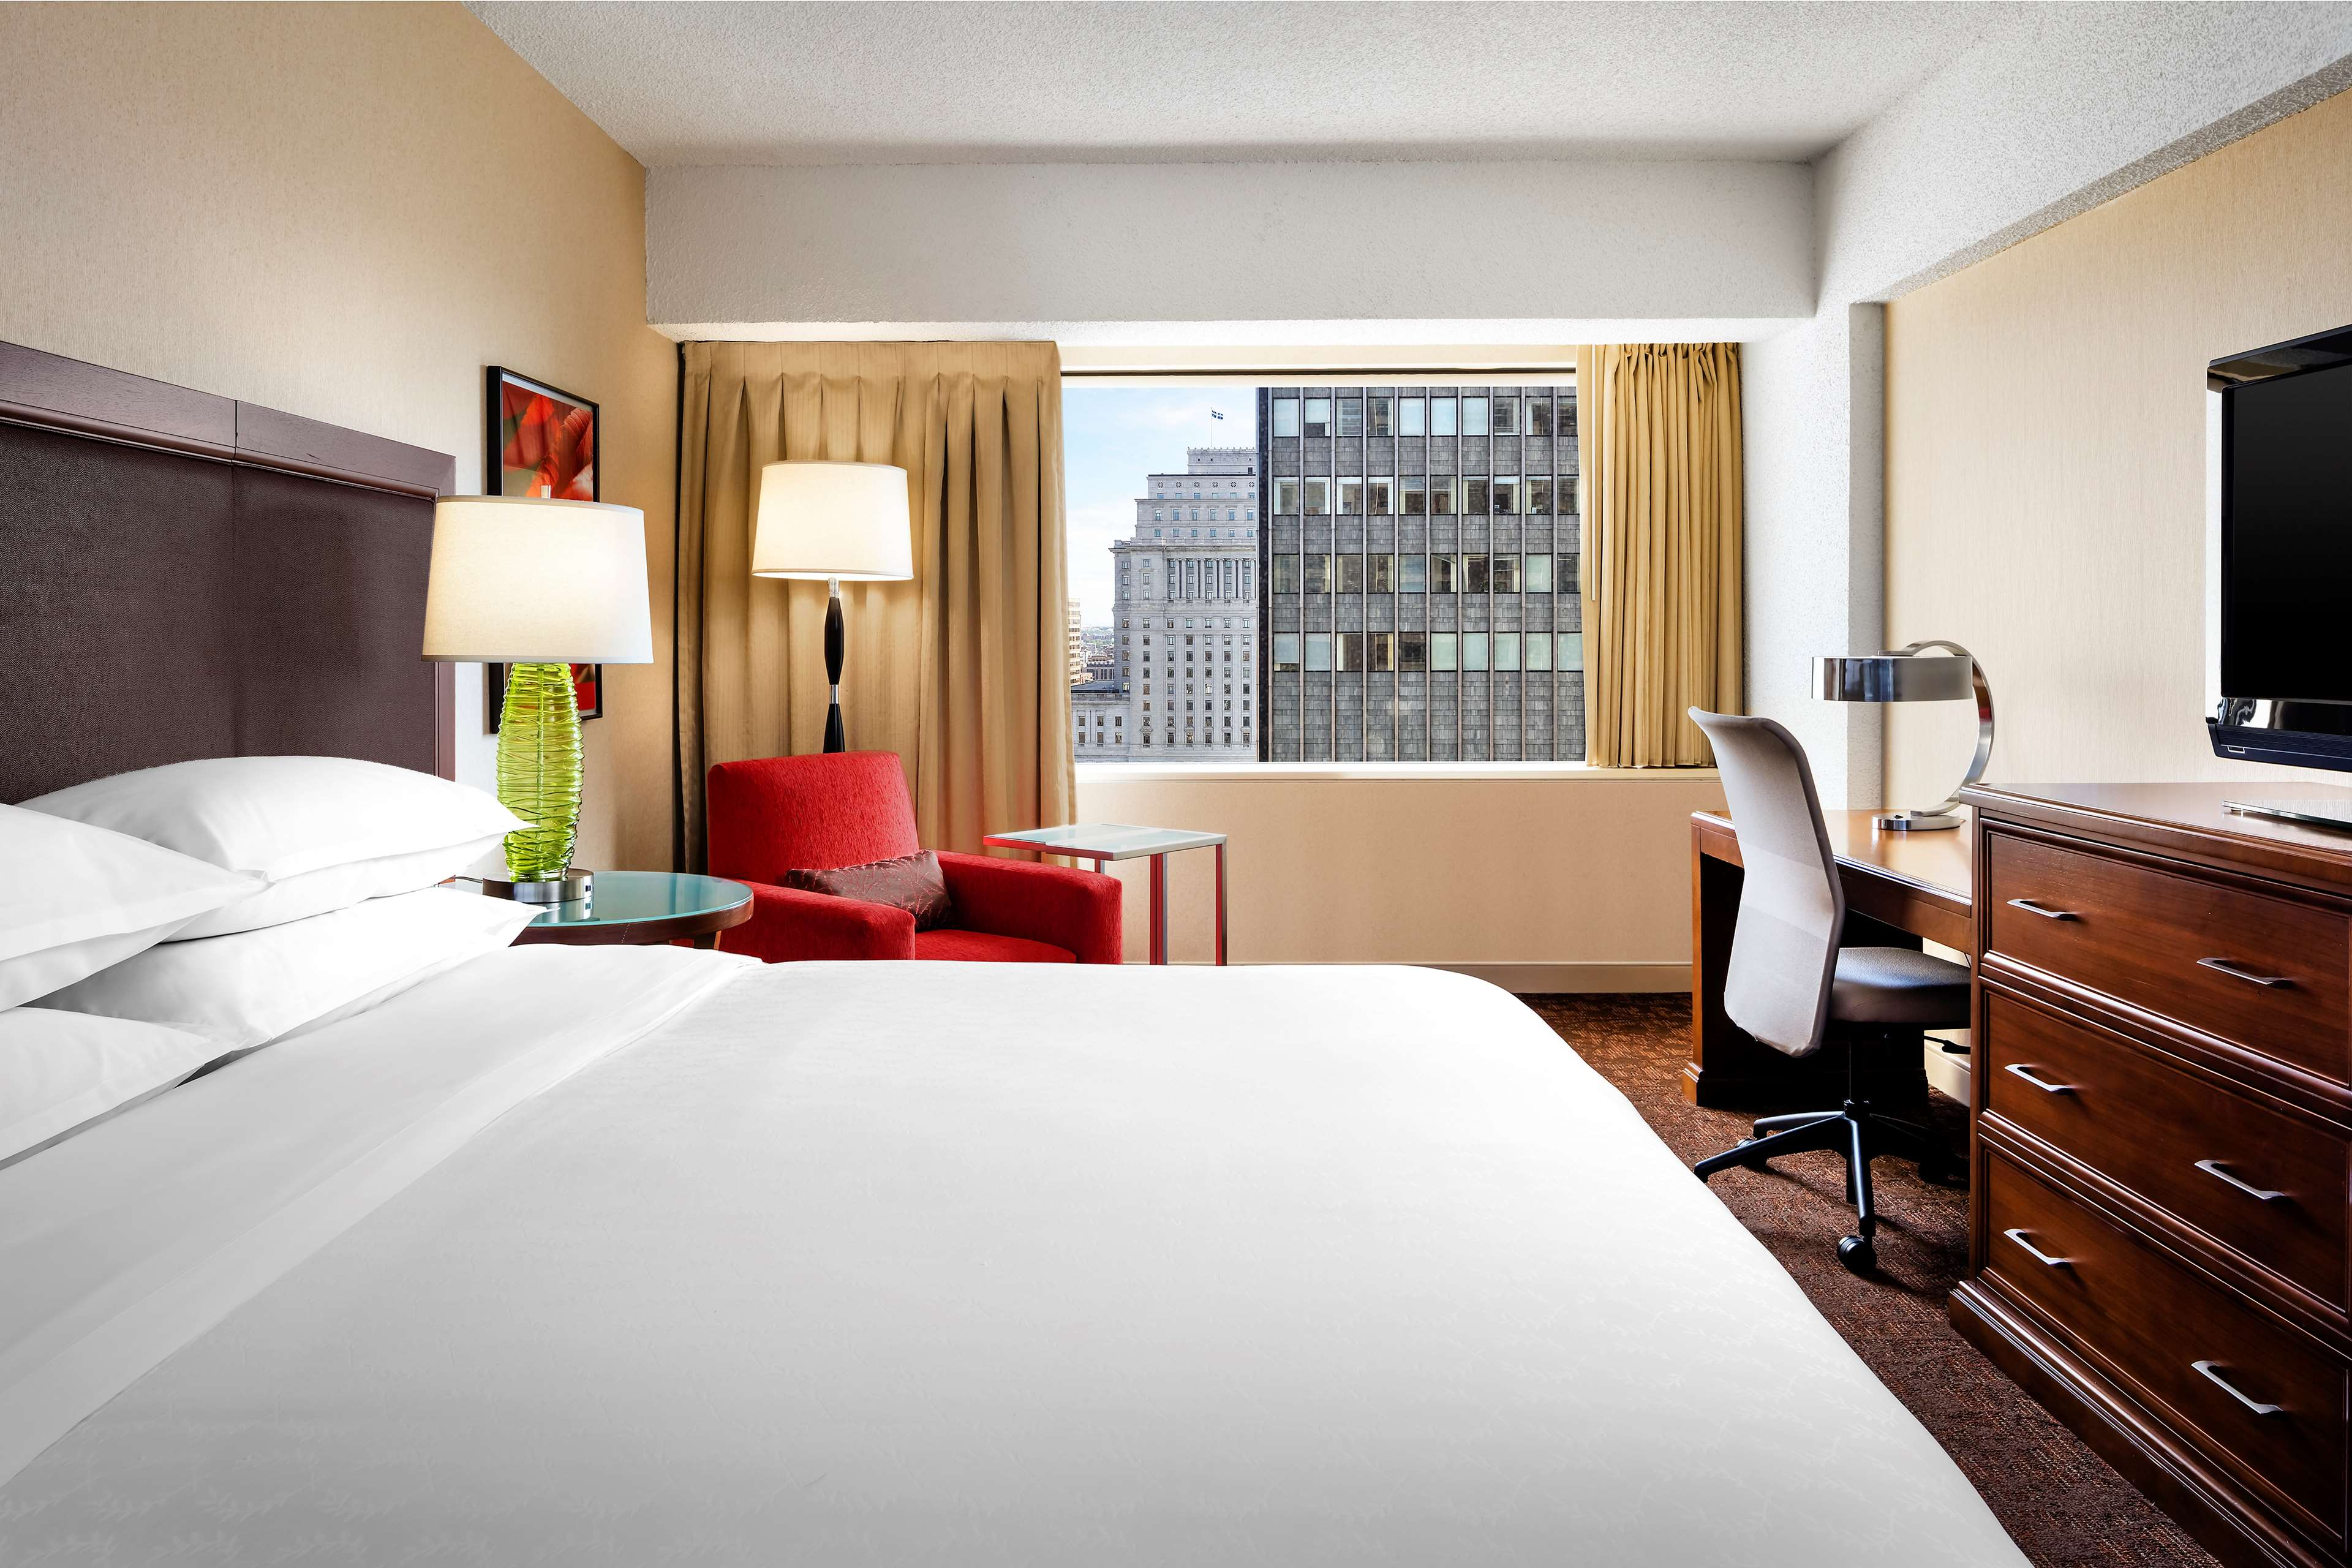 Le Centre Sheraton Montreal Hotel à Montreal: Chambre traditionnelle, lit king Traditional Guestroom, King Bed